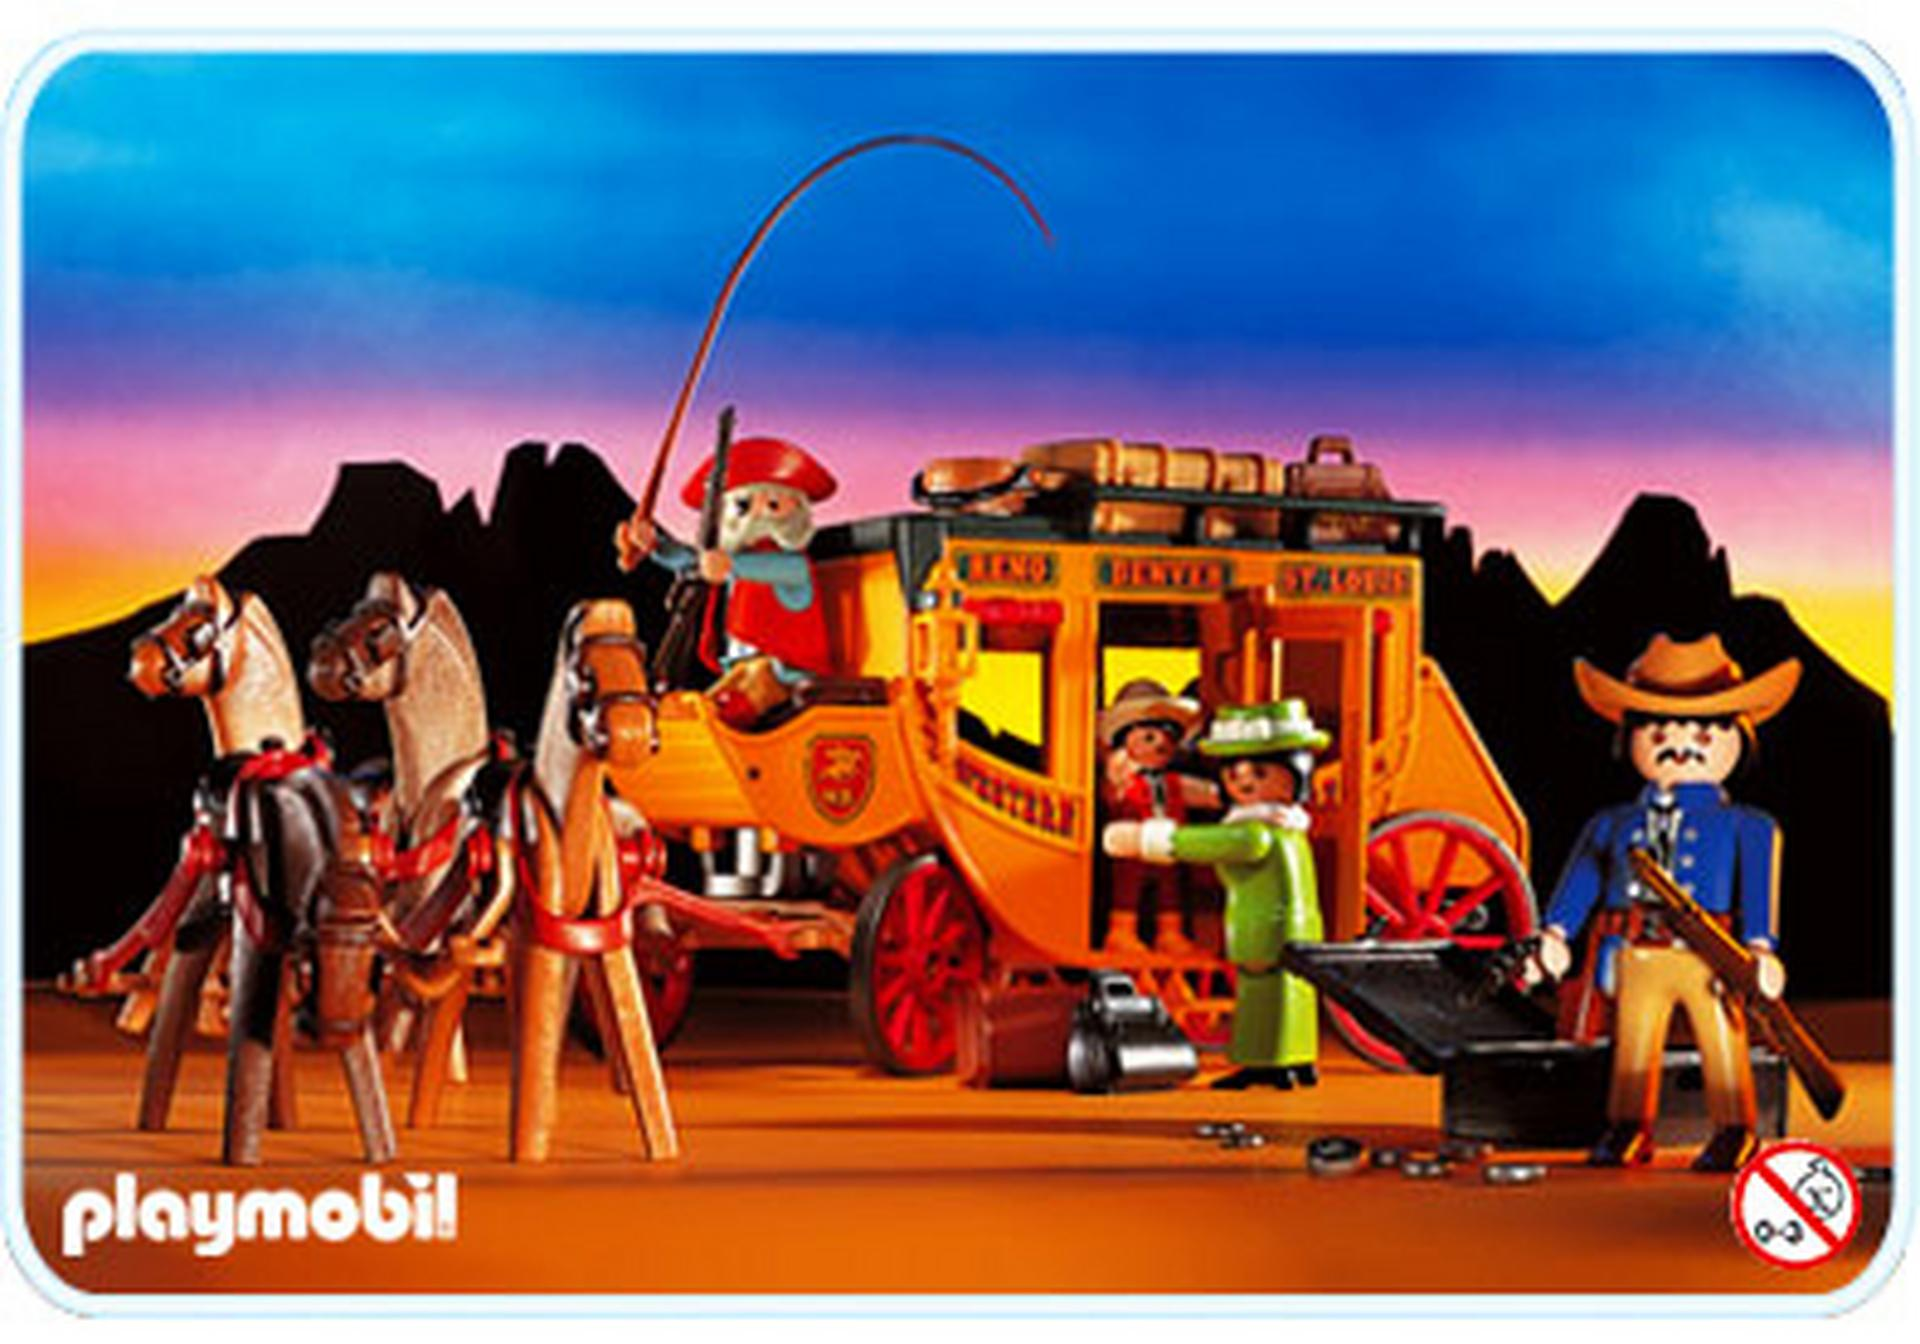 Diligence 3803 a playmobil france - Playmobil kutsche ...